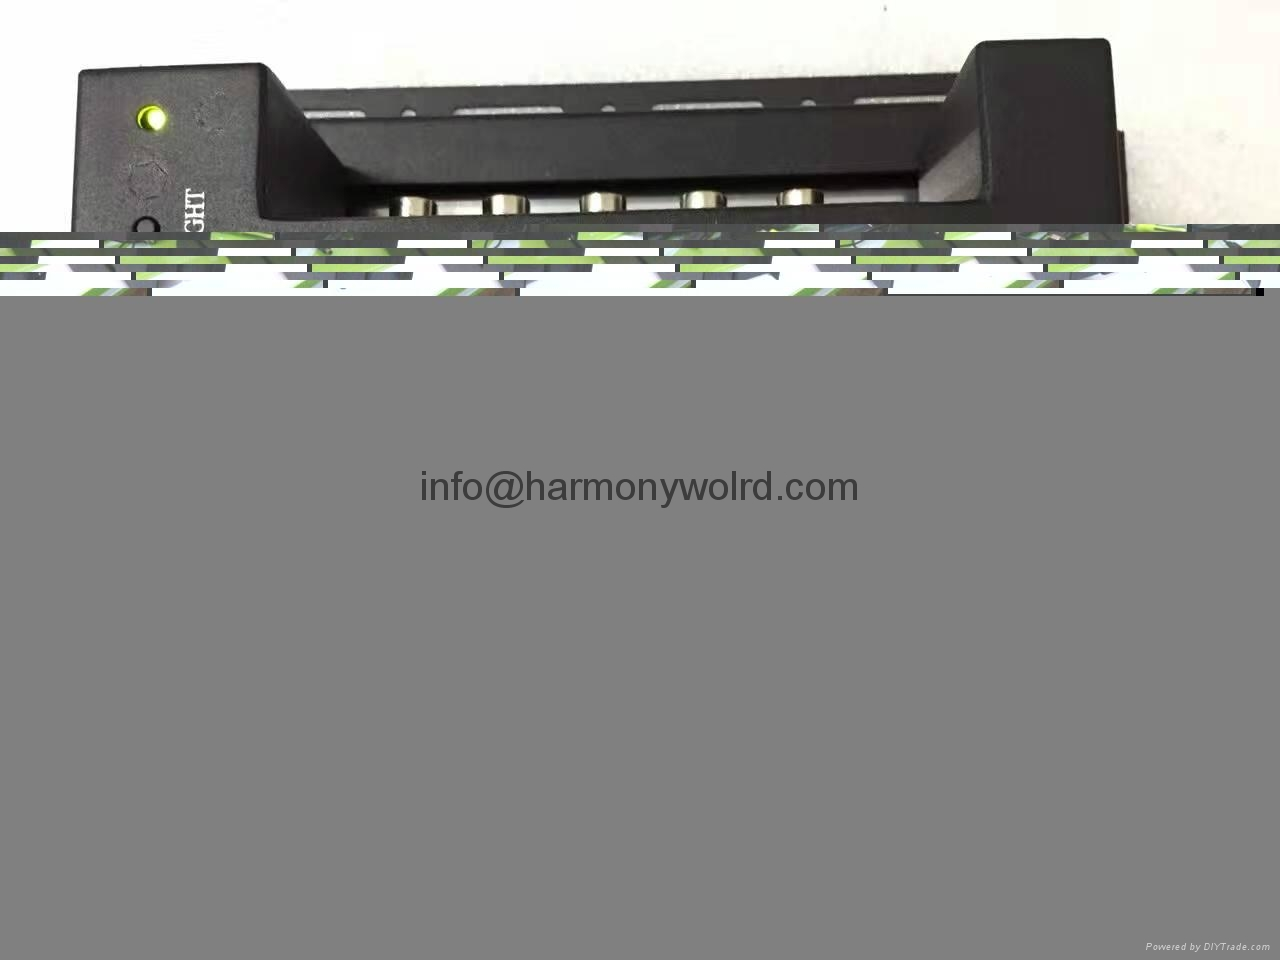 LCD Monitor For EATON CUTLER HAMMER 1785T-PMPS-1700 PANELMATE 91-01761-00 3